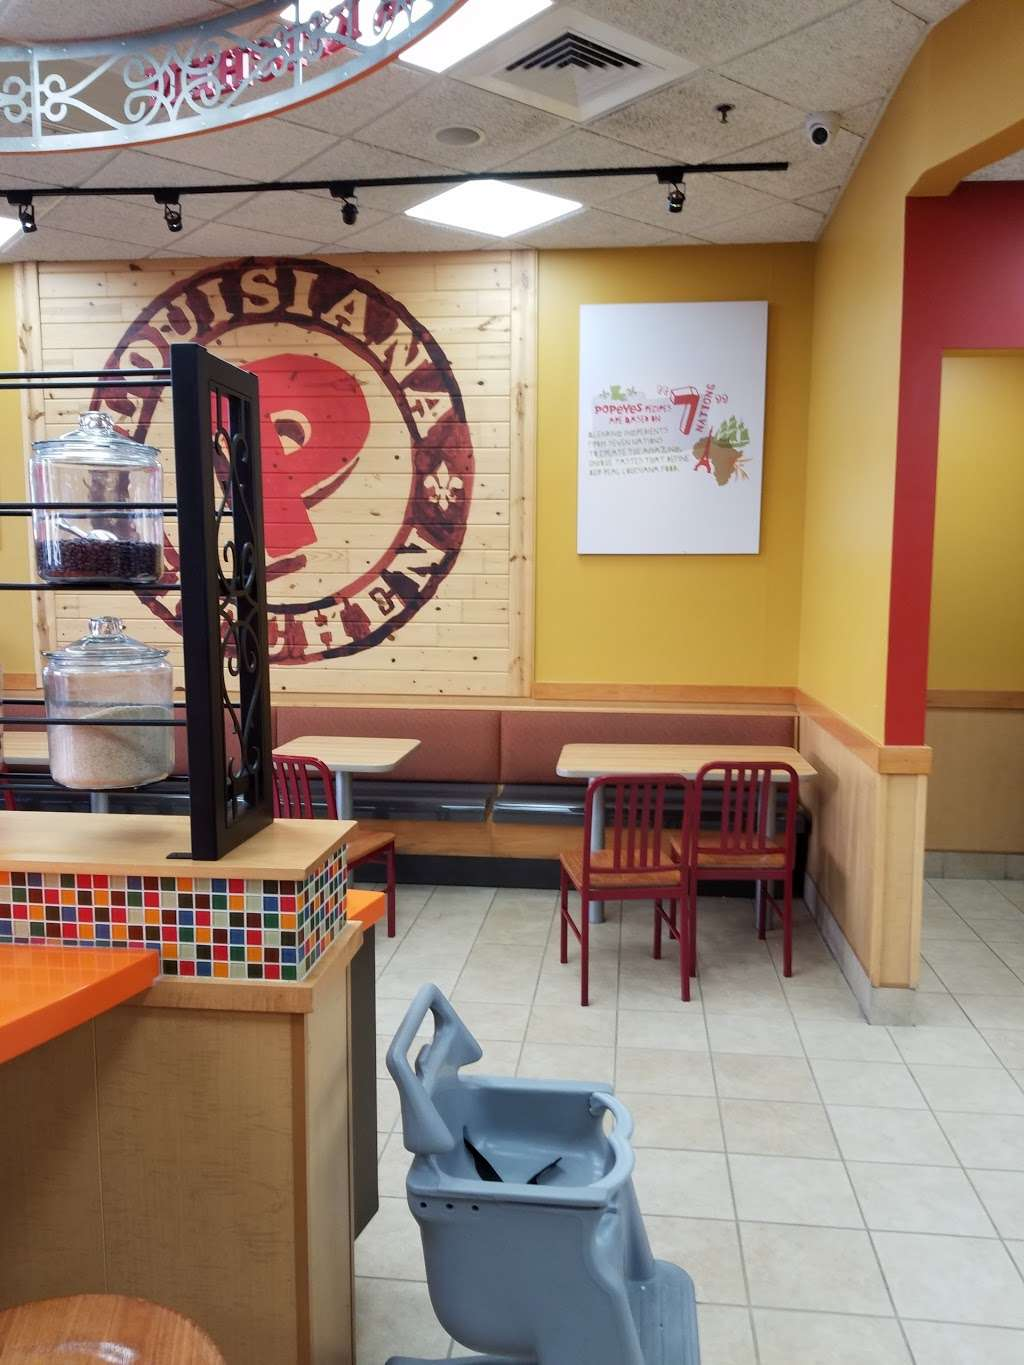 Popeyes Louisiana Kitchen - restaurant  | Photo 9 of 10 | Address: 221 W Merrick Rd, Valley Stream, NY 11580, USA | Phone: (516) 599-2506